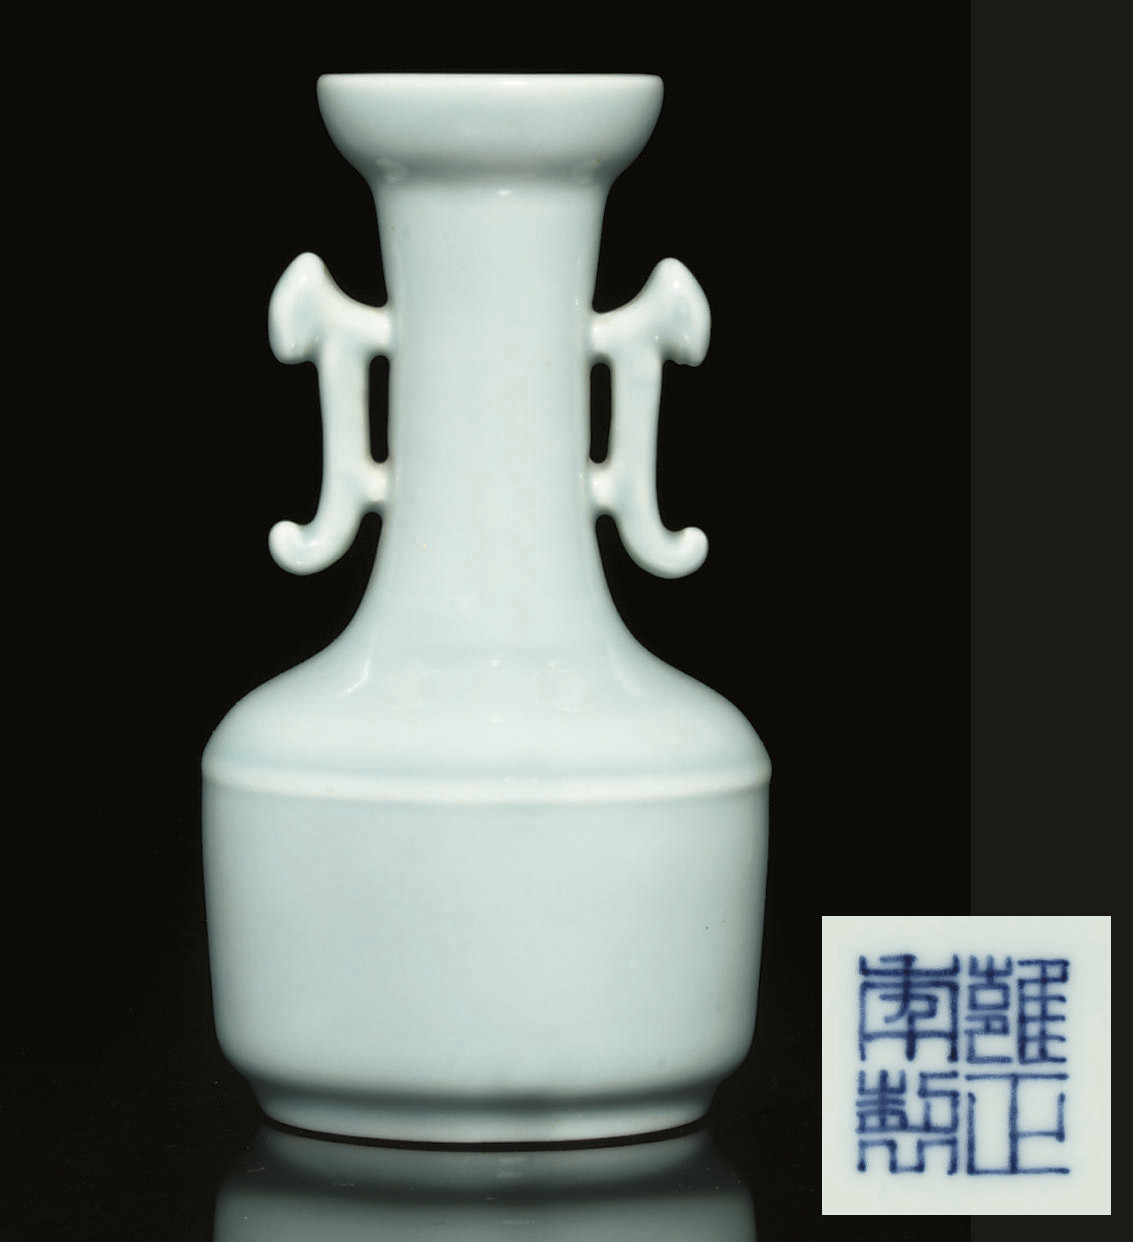 A SMALL BOTTLE VASE, UNDERGLAZ